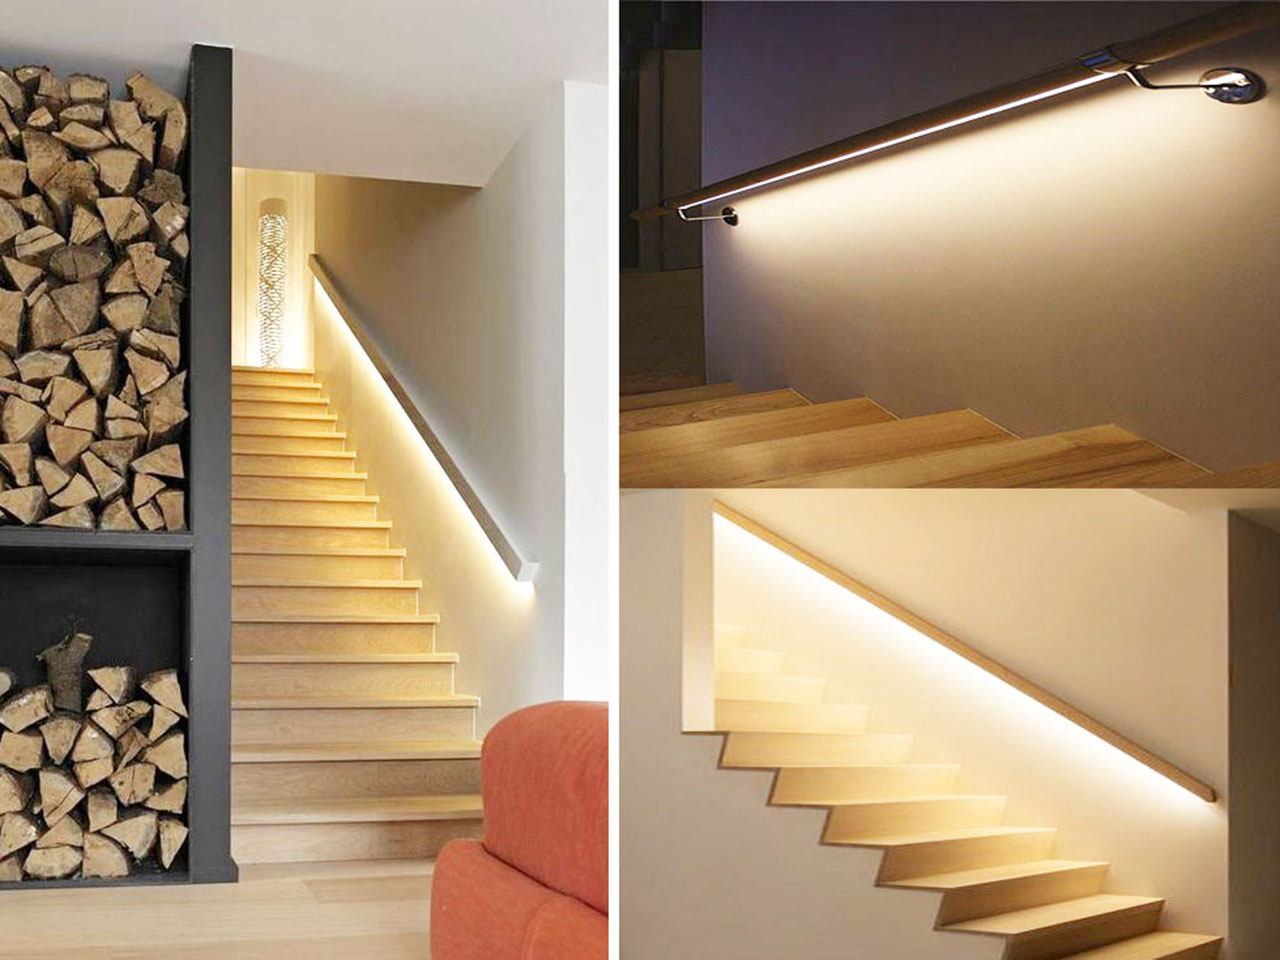 Descubre la decoraci n con luces led y todas sus ventajas - Lamparas de piso para interiores ...